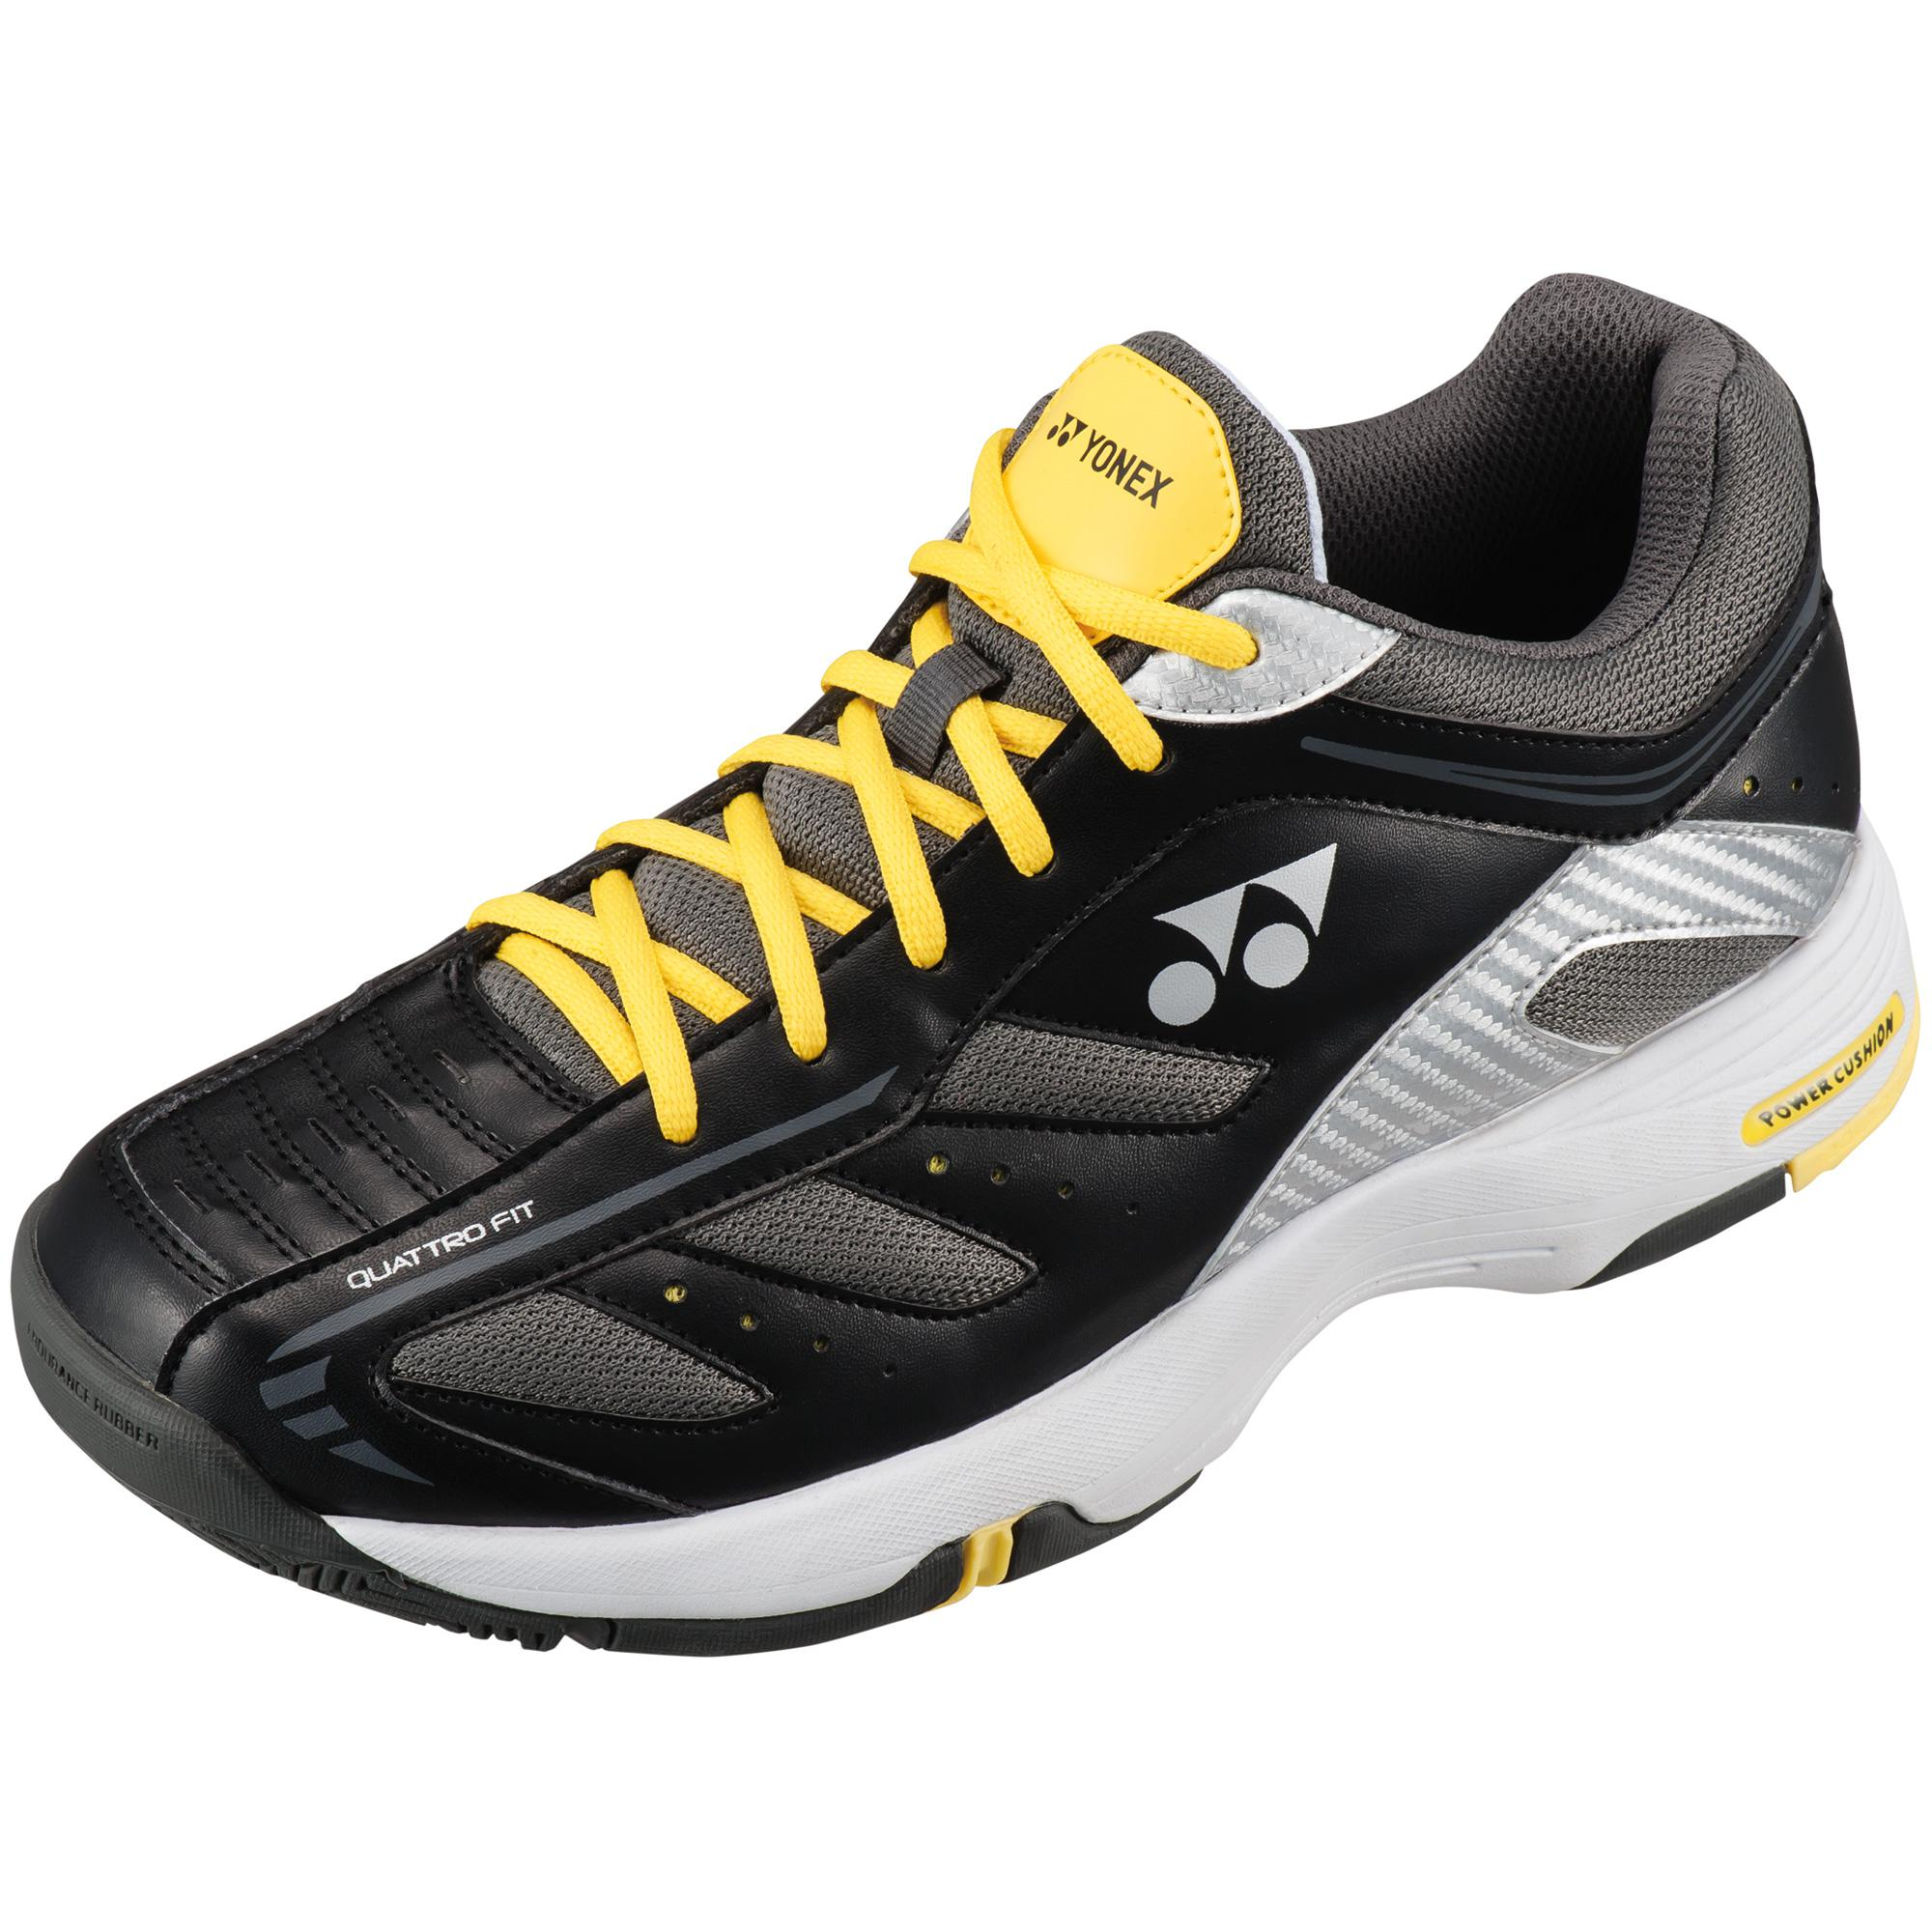 Yonex Mens SHT Cefiro All-Court Tennis Shoes - Black - Tennisnuts.com